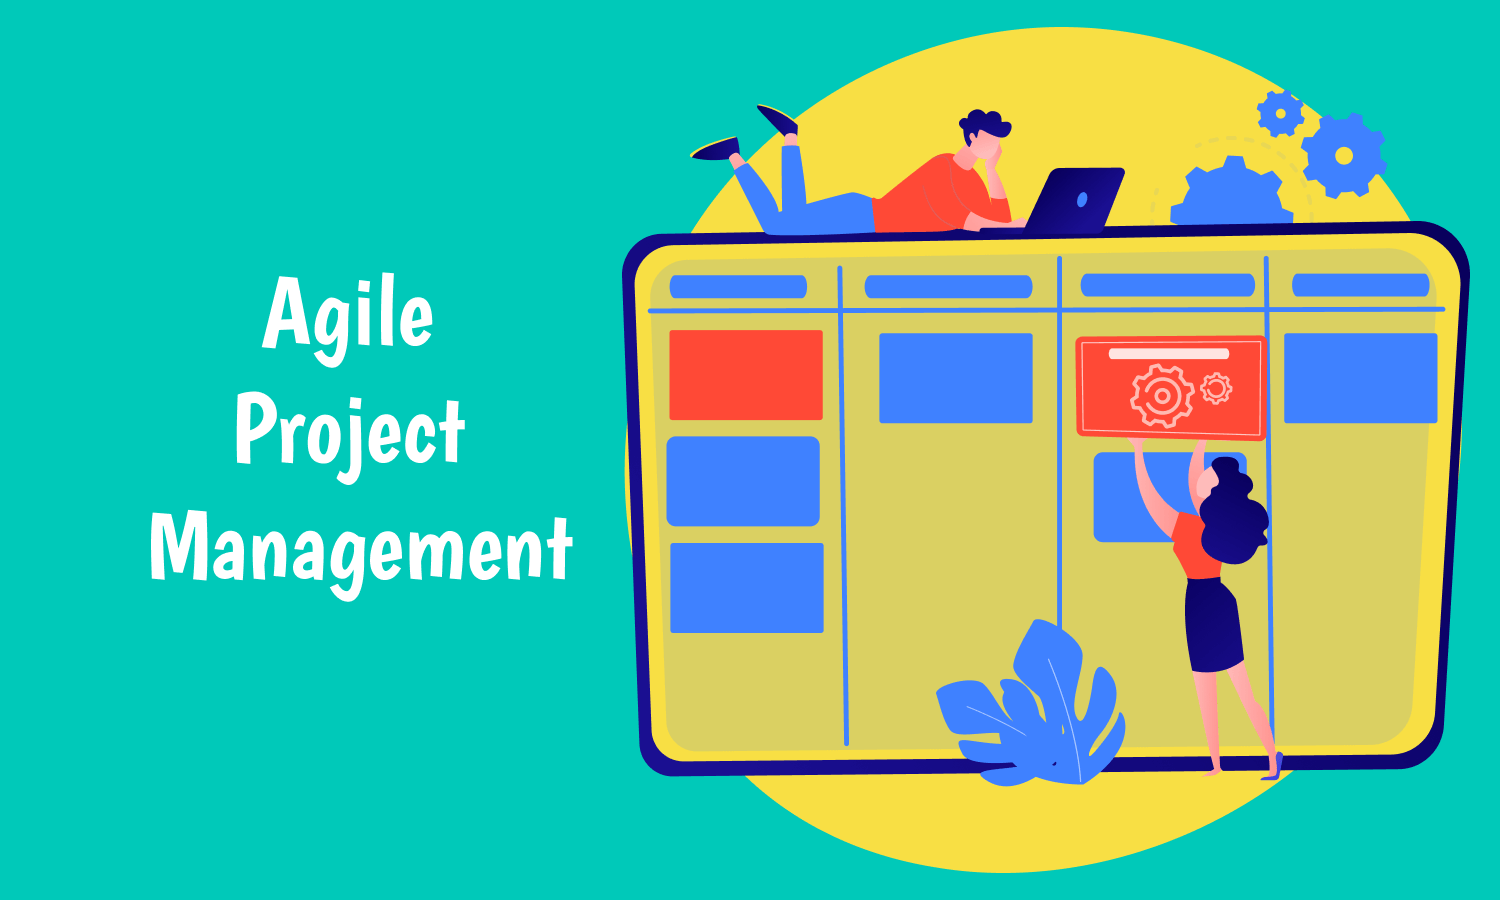 The benefits of Agile